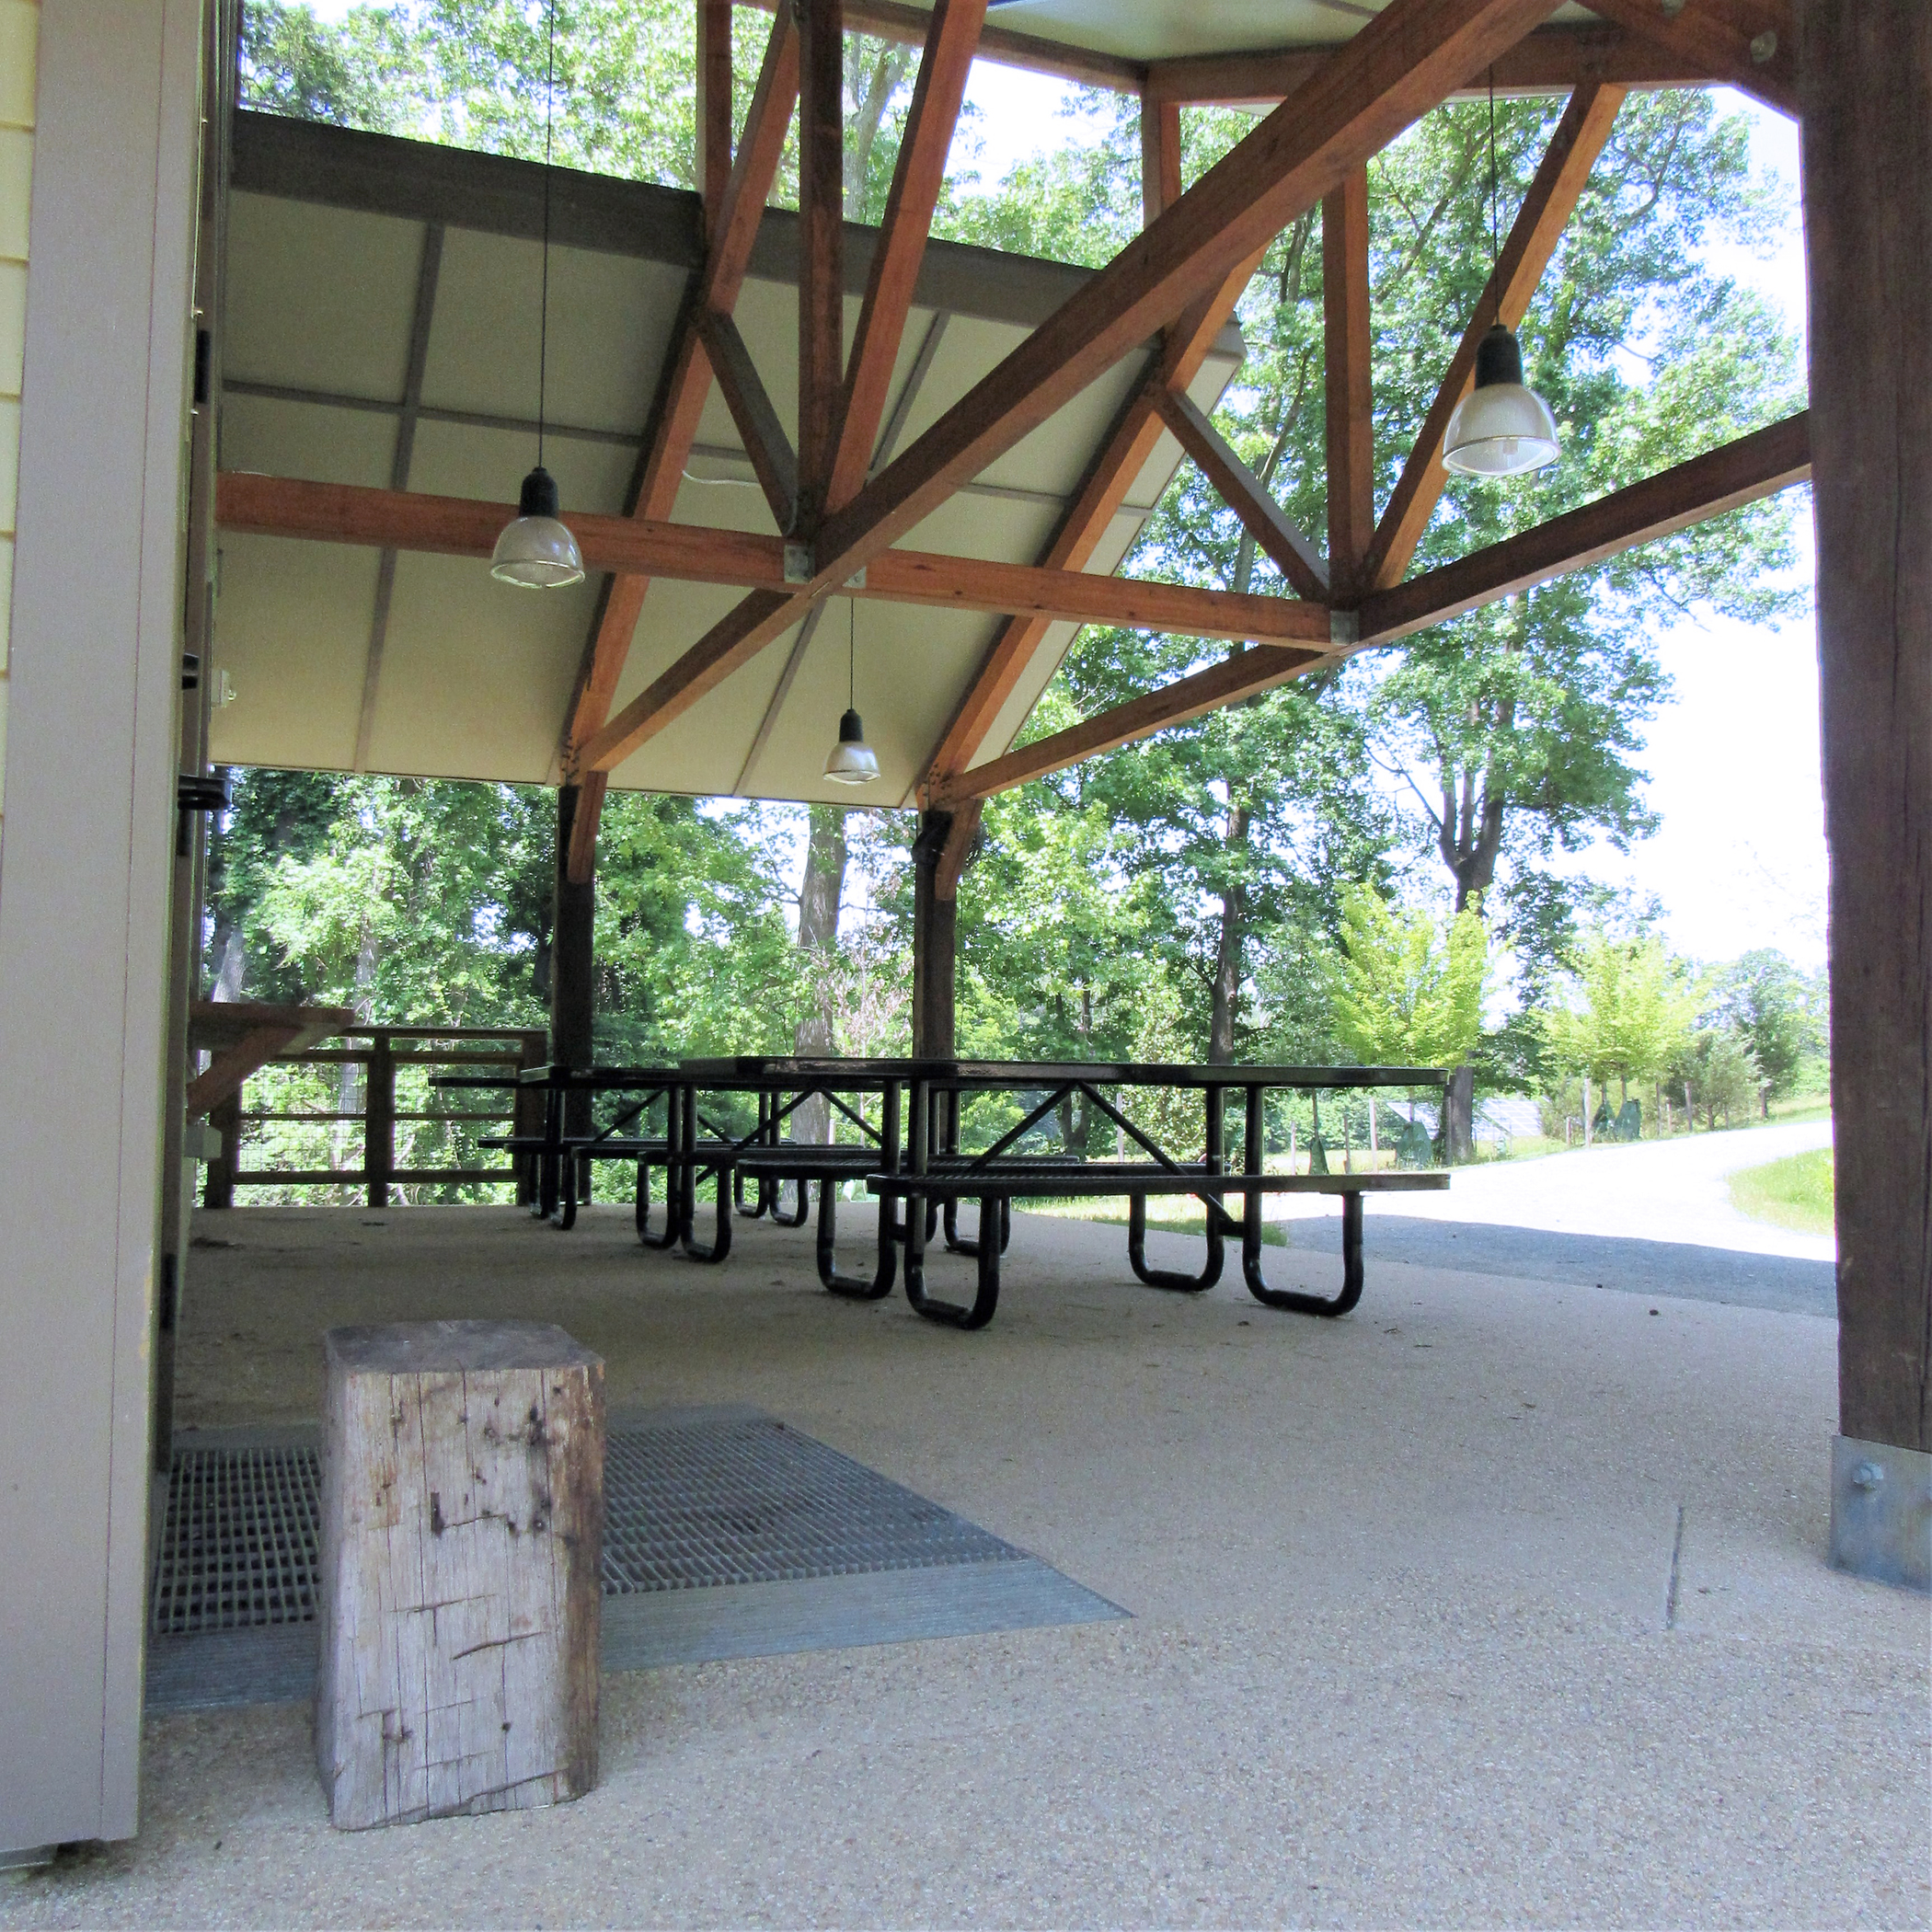 Cafritz Foundation Environmental Center Patio